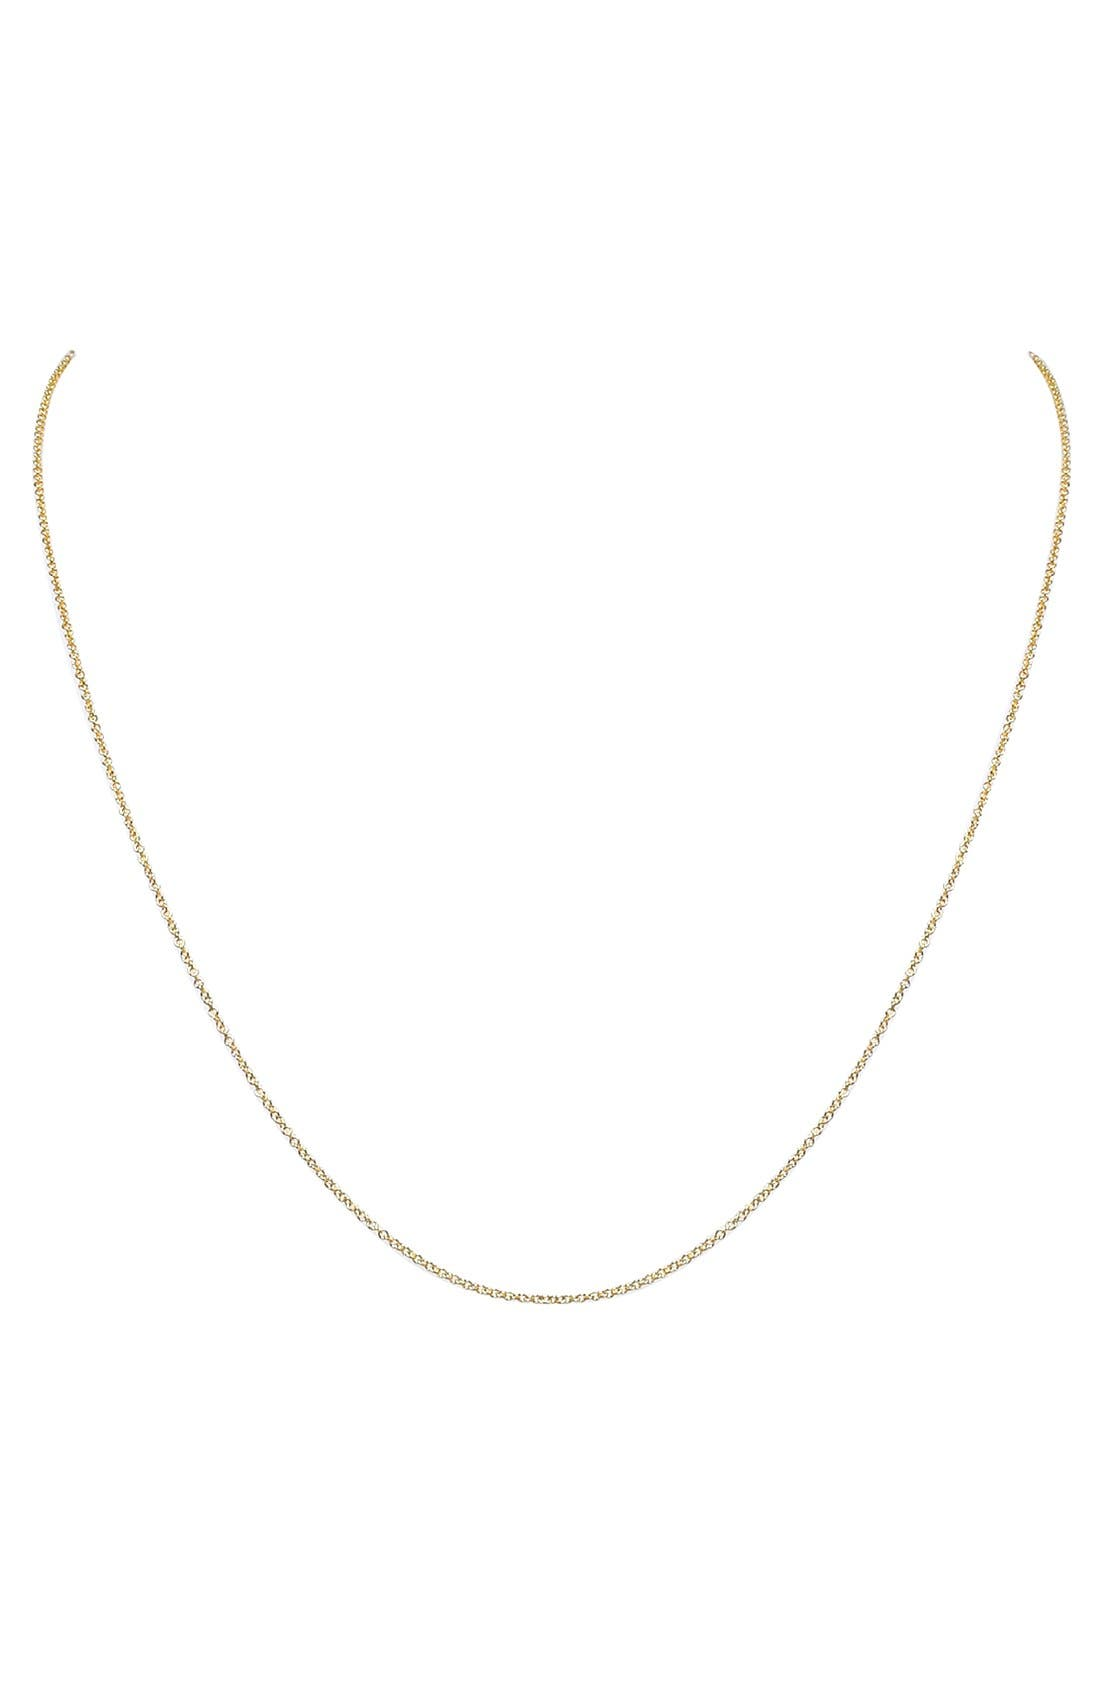 Alternate Image 1 Selected - Bony Levy Chain Necklace (Nordstrom Exclusive)